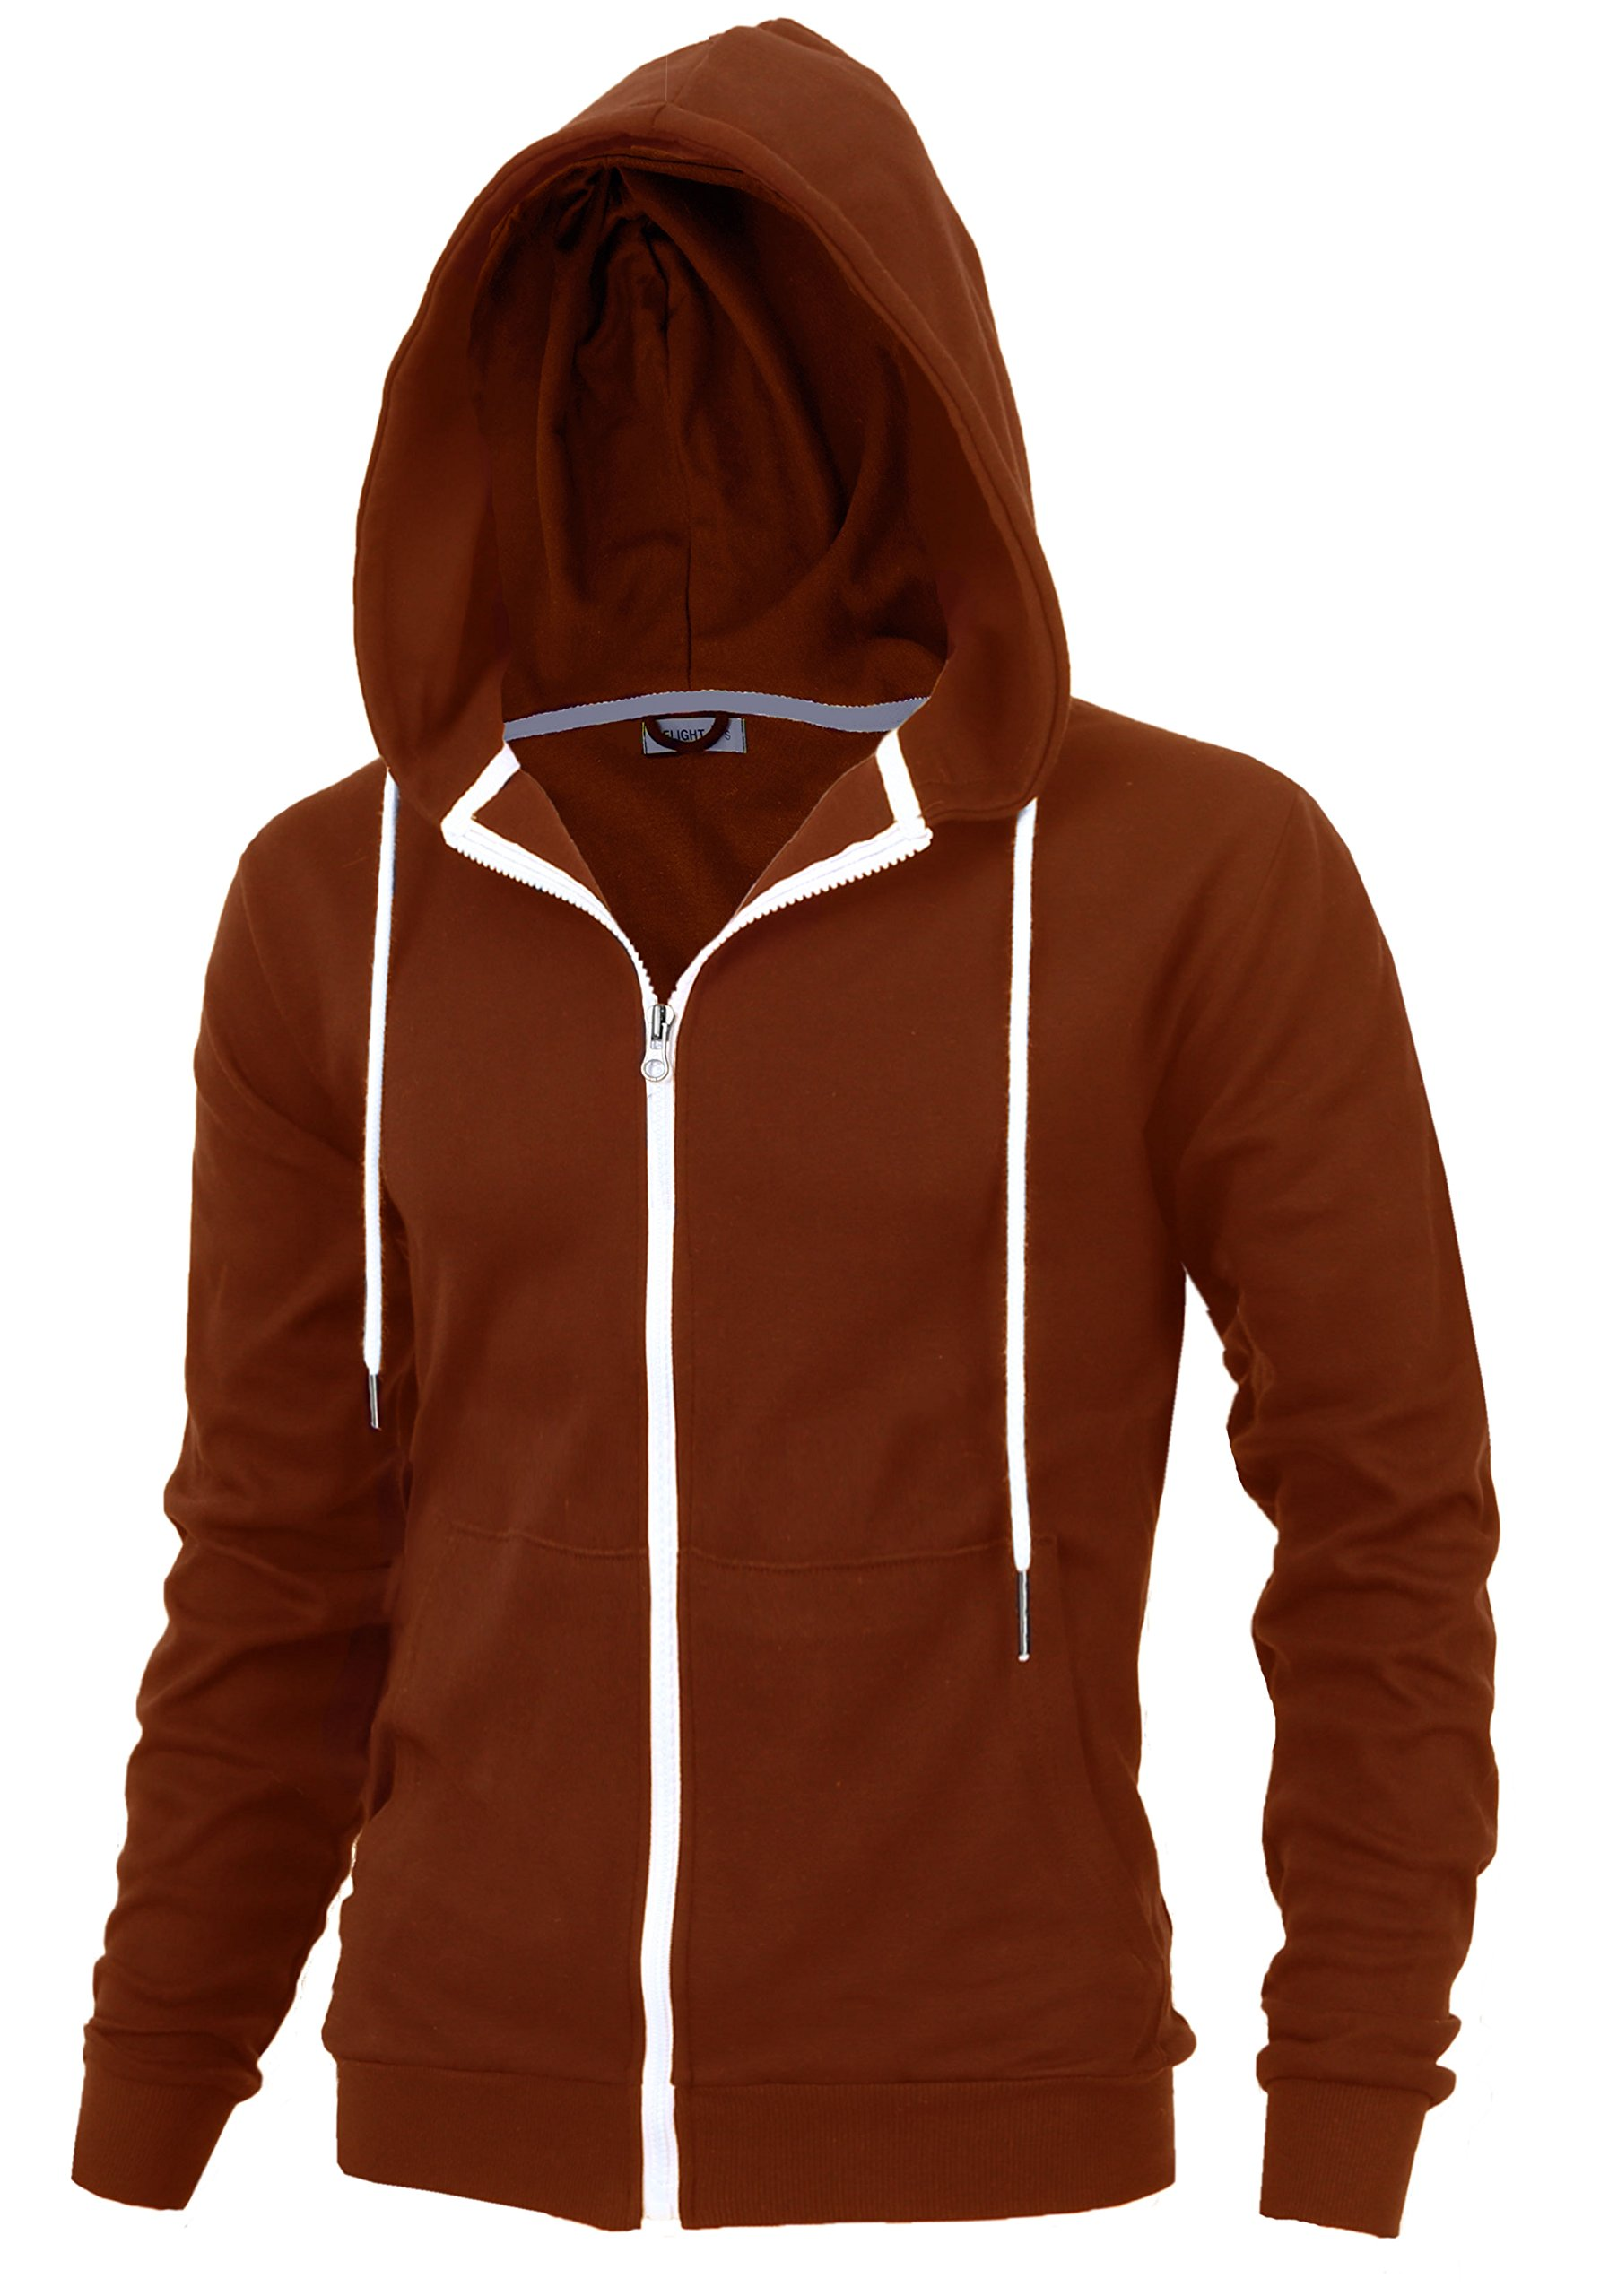 Delight Men's Fashion Fit Full-Zip Hoodie with Inner Cell Phone Pocket (US Large, Brick)